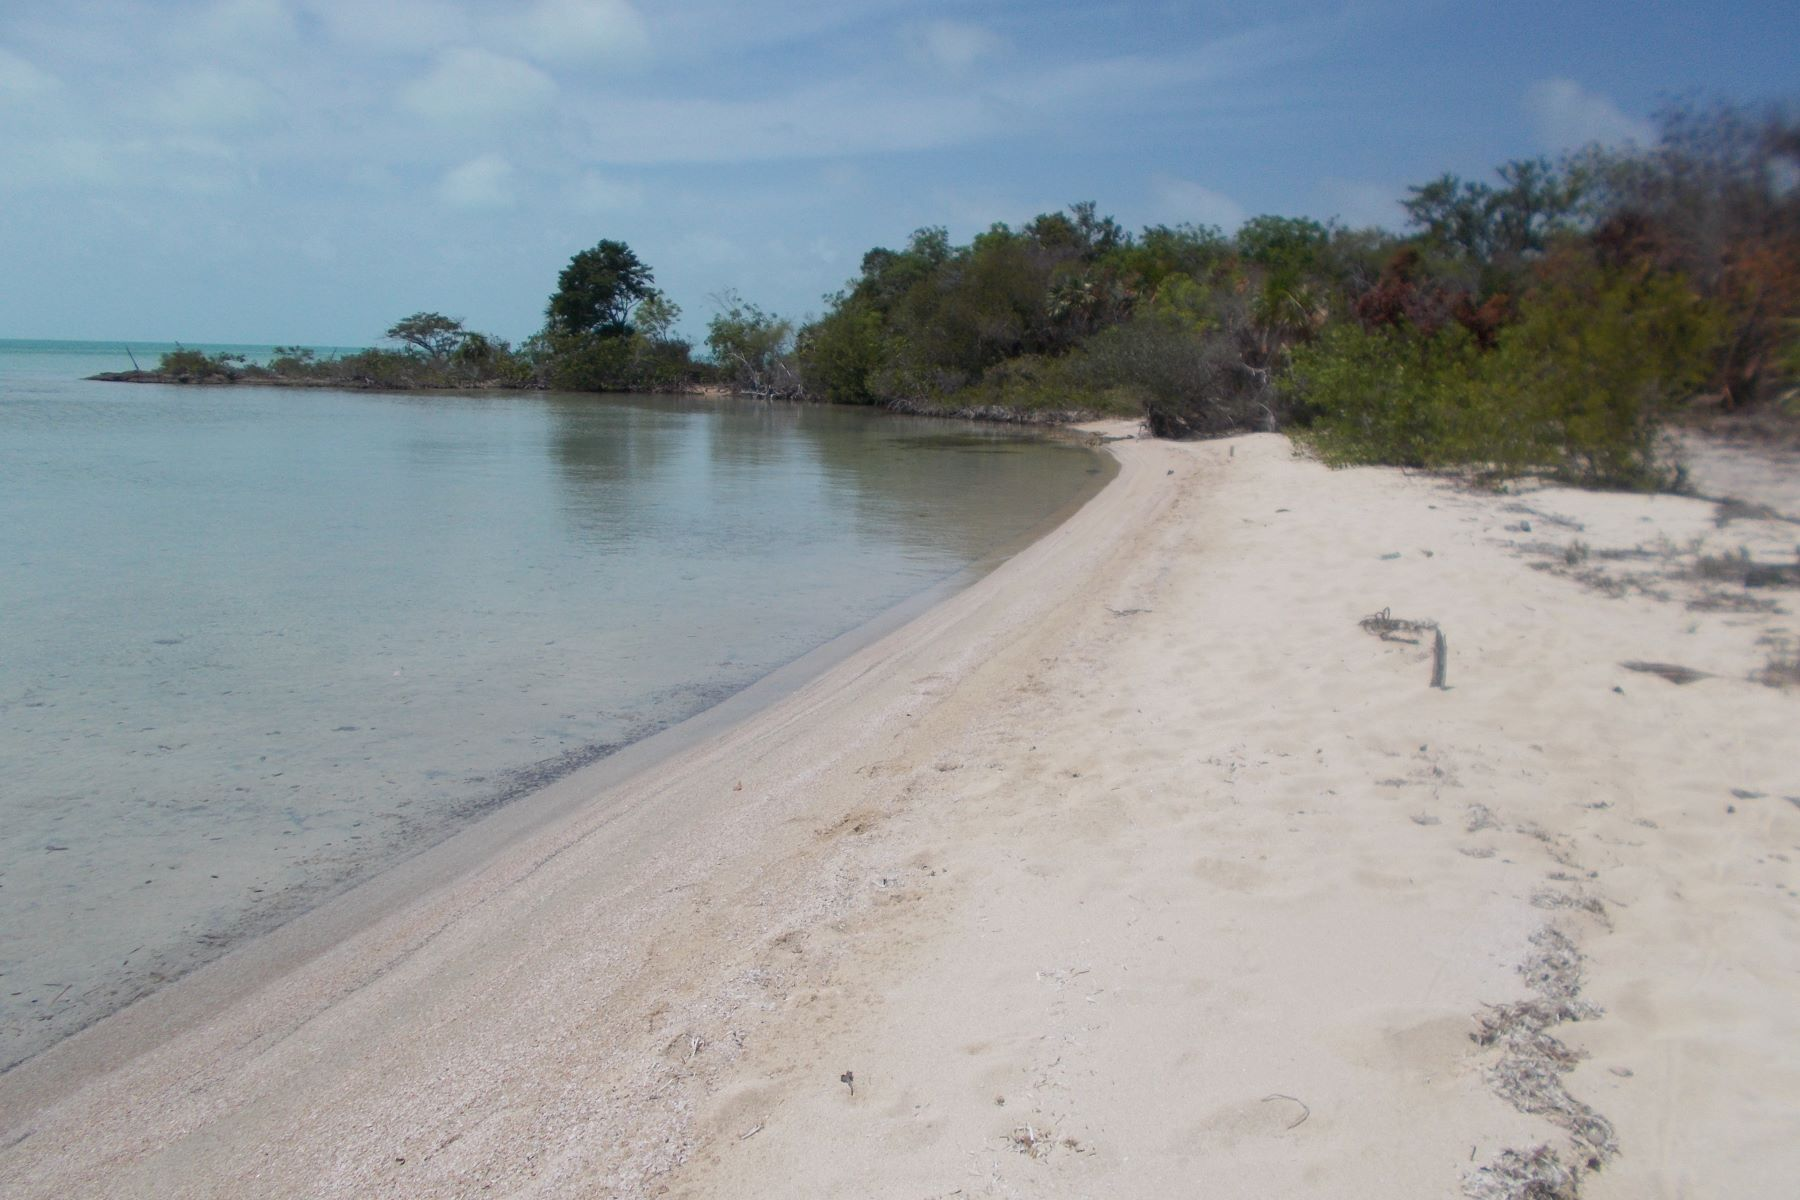 Land for Sale at Caribbean Coves Lot #32 San Pedro Town, Ambergris Caye, Belize